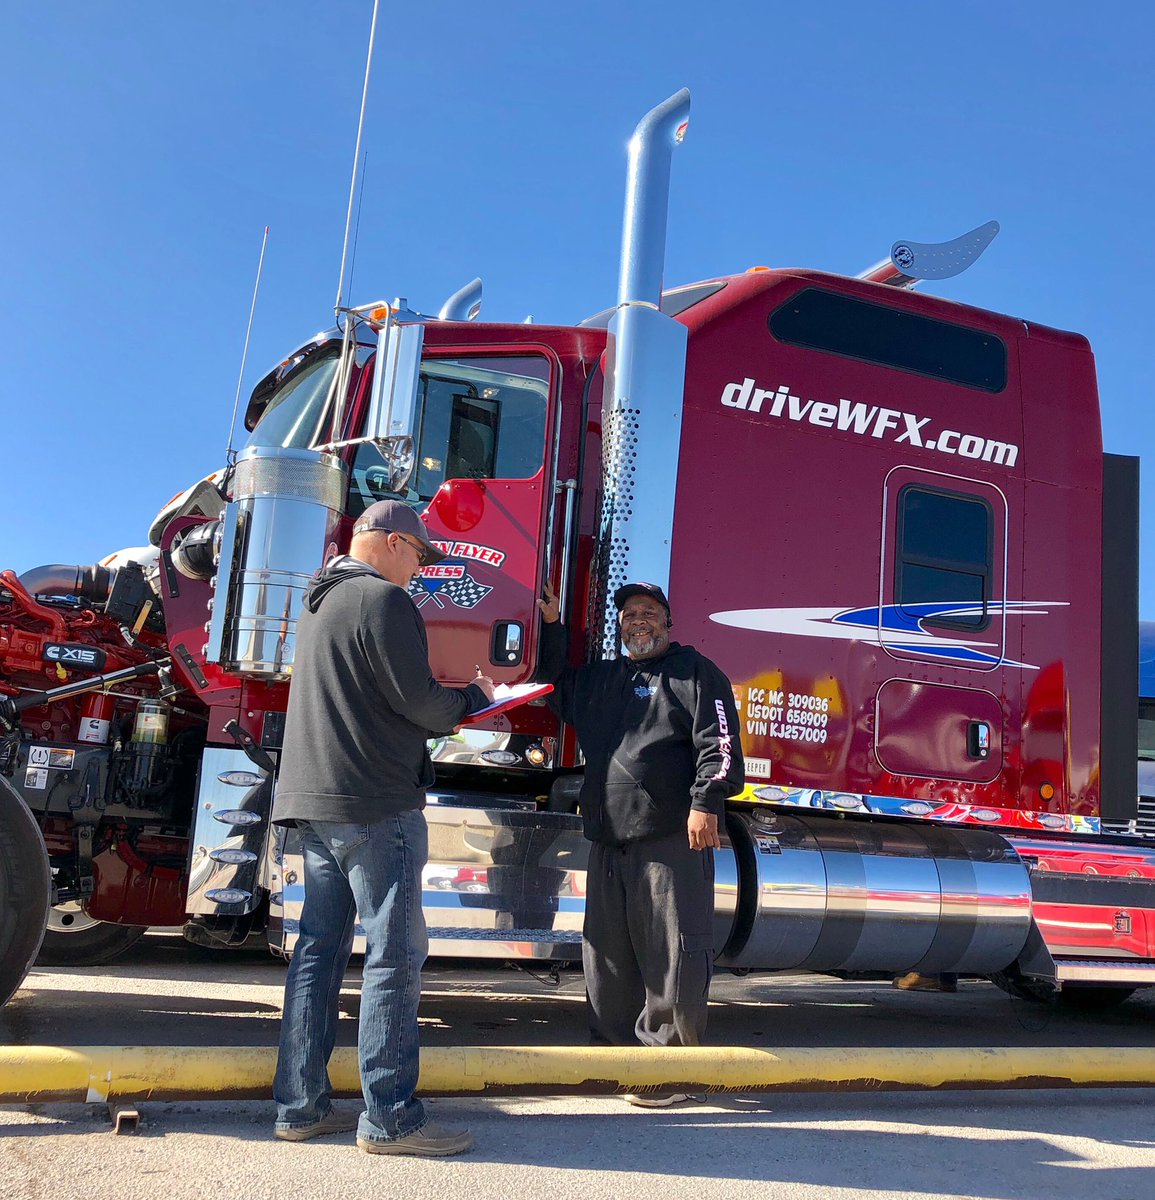 It's a beautiful day in OKC and Darryl's heading out in his W900. Our transition team gets him off to a great start. . . #driveyourdream #cdldriver #cdlcontractor #18wheelers #otrdriver #otrcontractor #bigrig #leasetoown #driveWFX #kenworth #truckdriver #drive